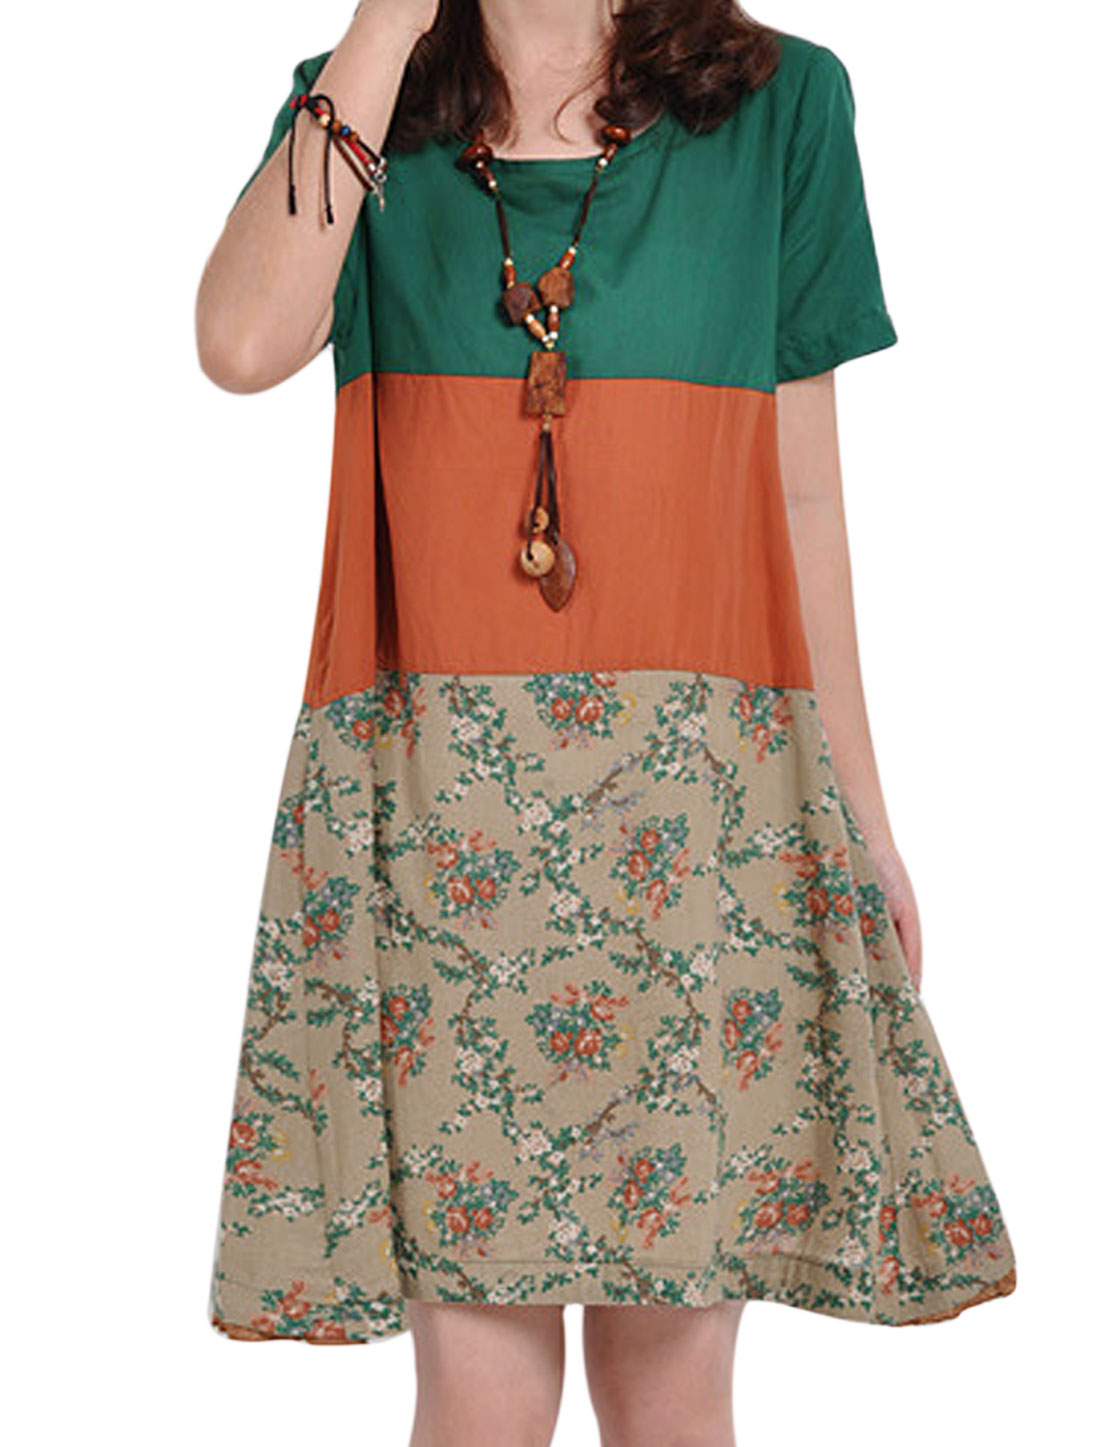 Lady Flower Pattern Button Closure Back Tea Dress Orange Dusty Green M